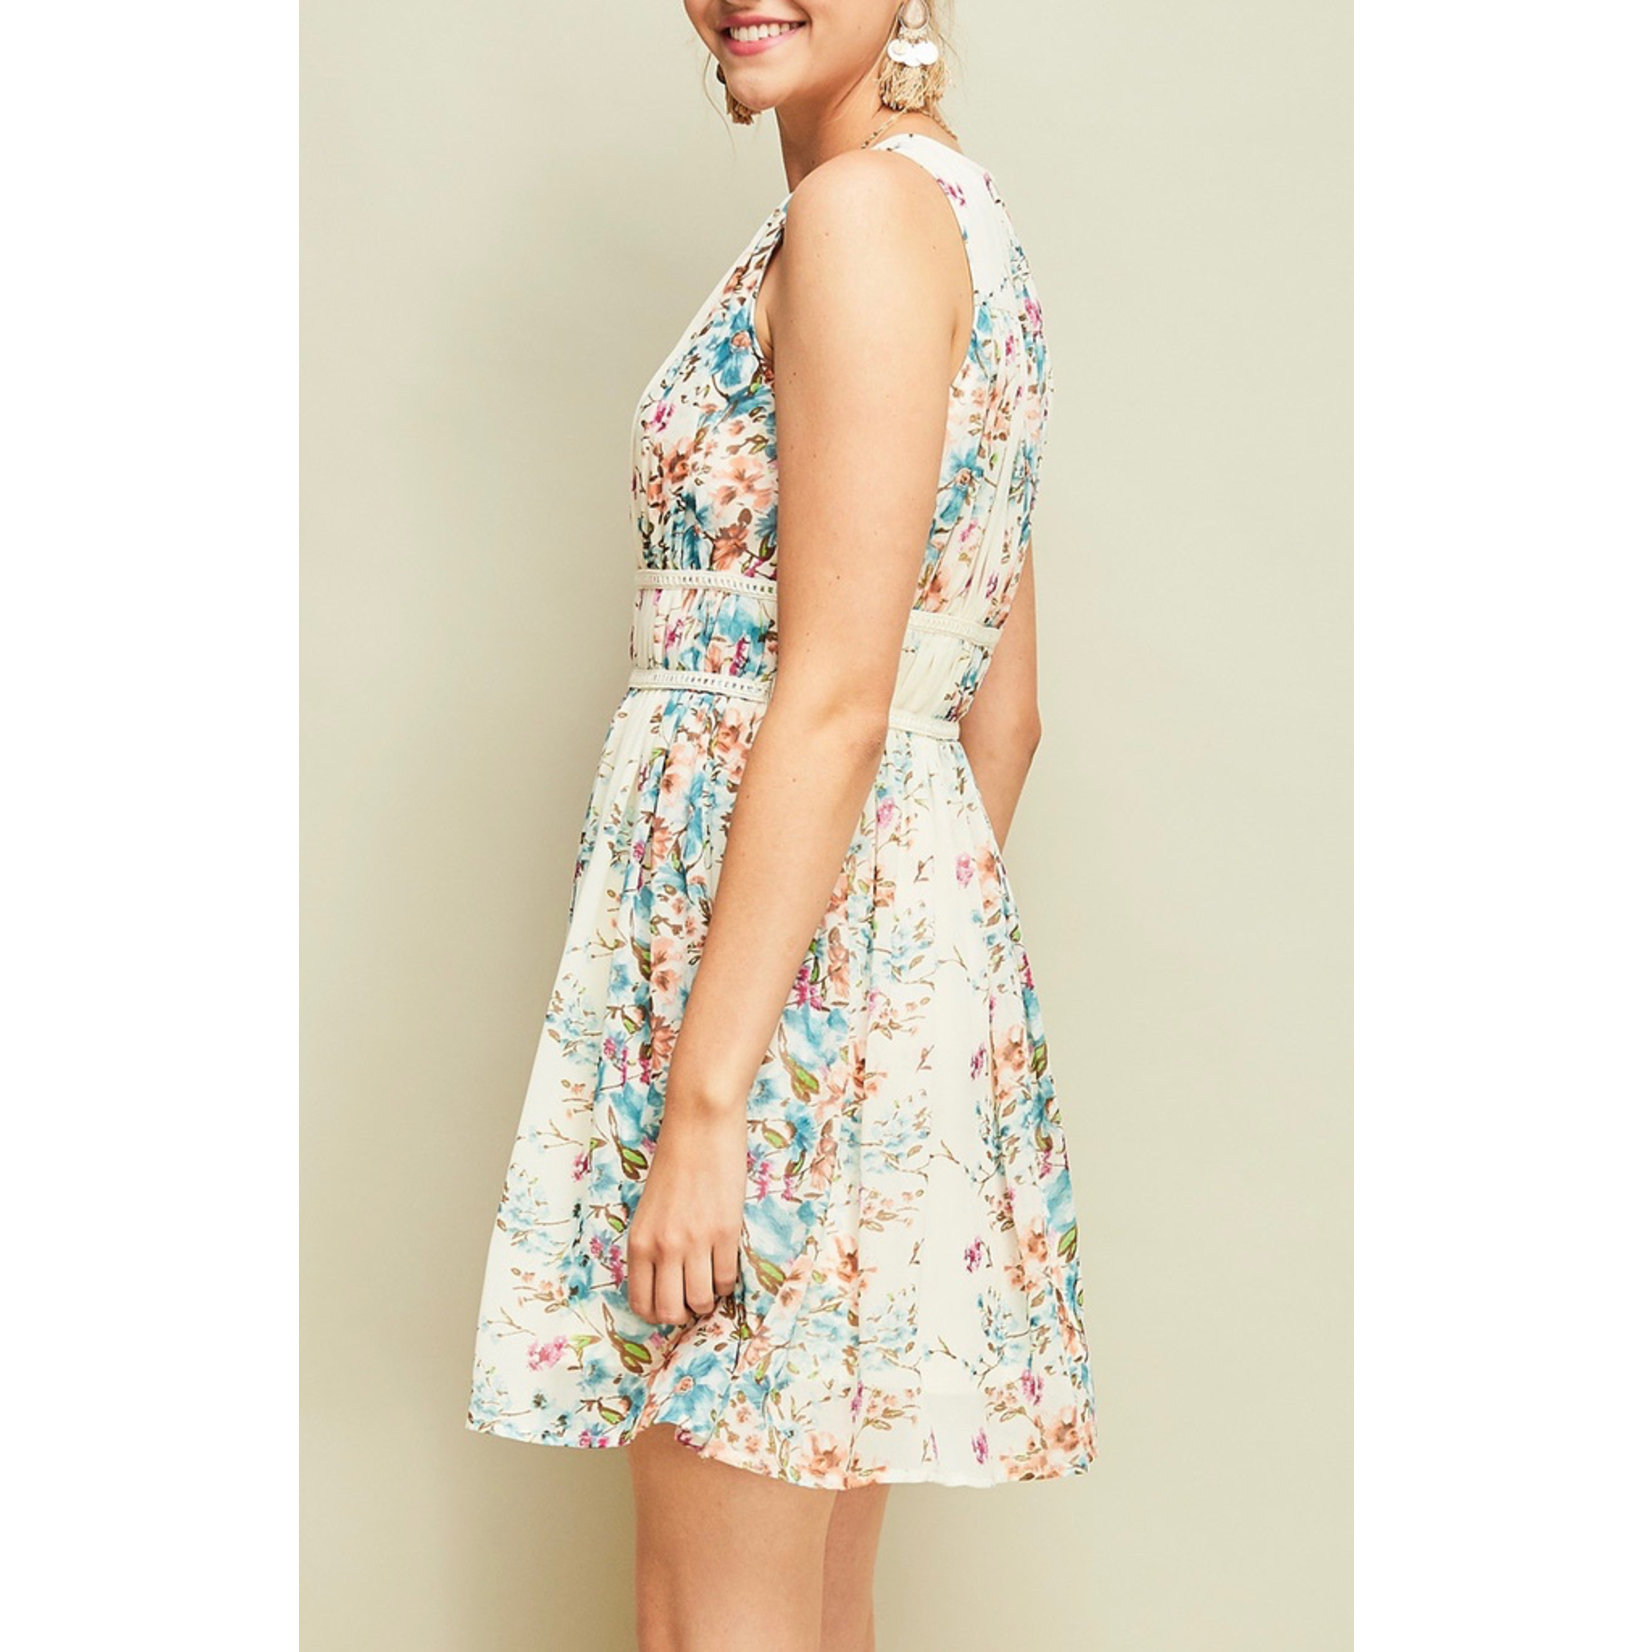 Entro Pleated floral dress